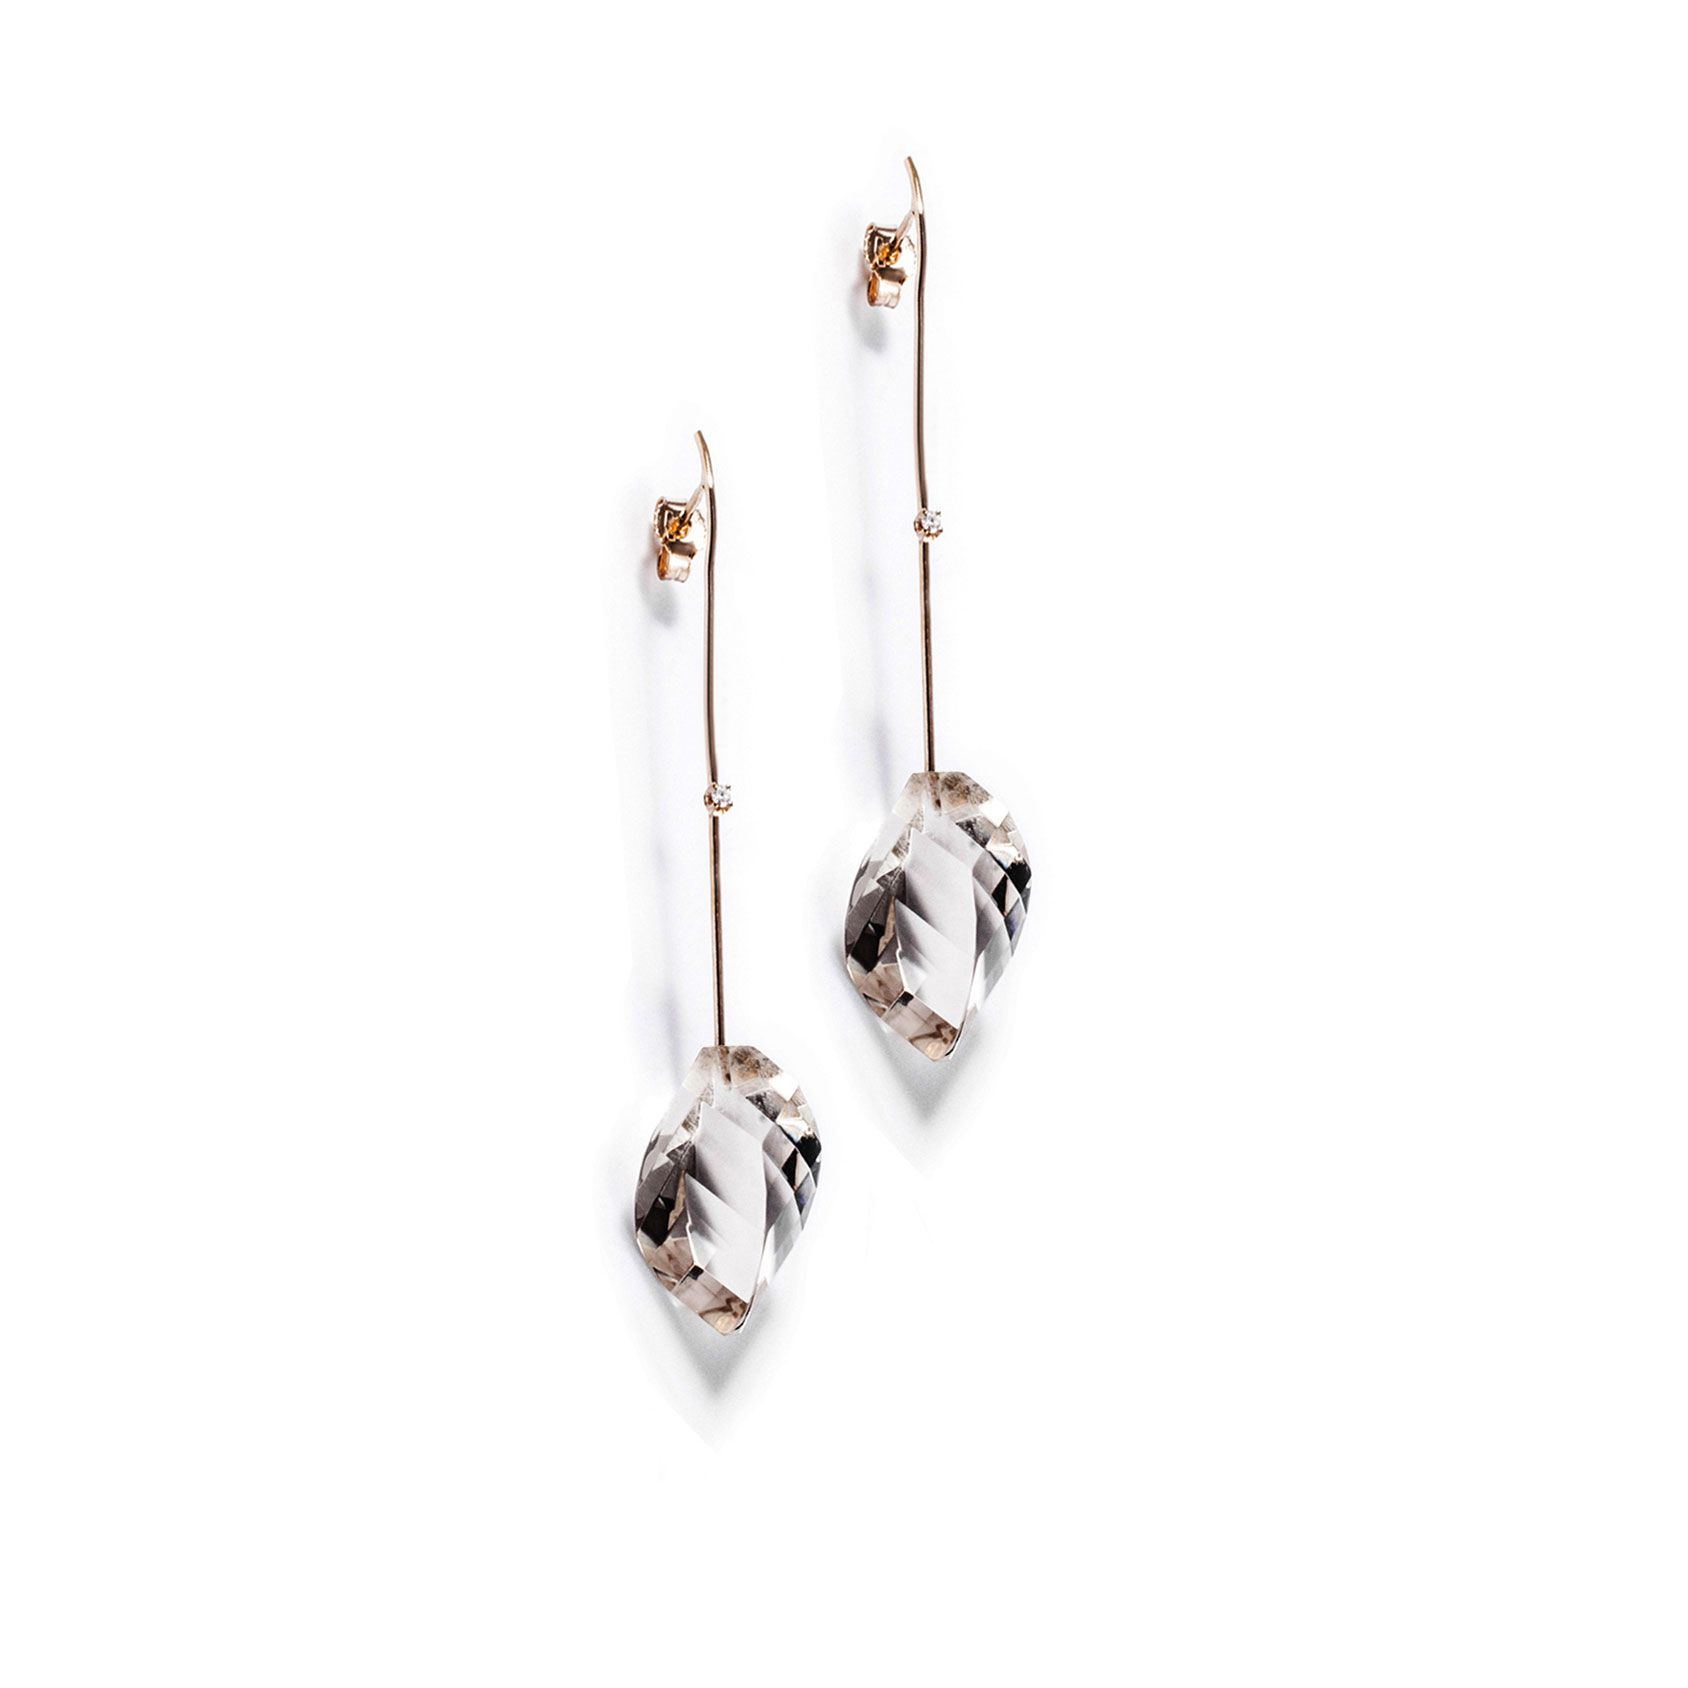 Rose gold 'Amo' earrings with crystals Rose gold and diamond earrings